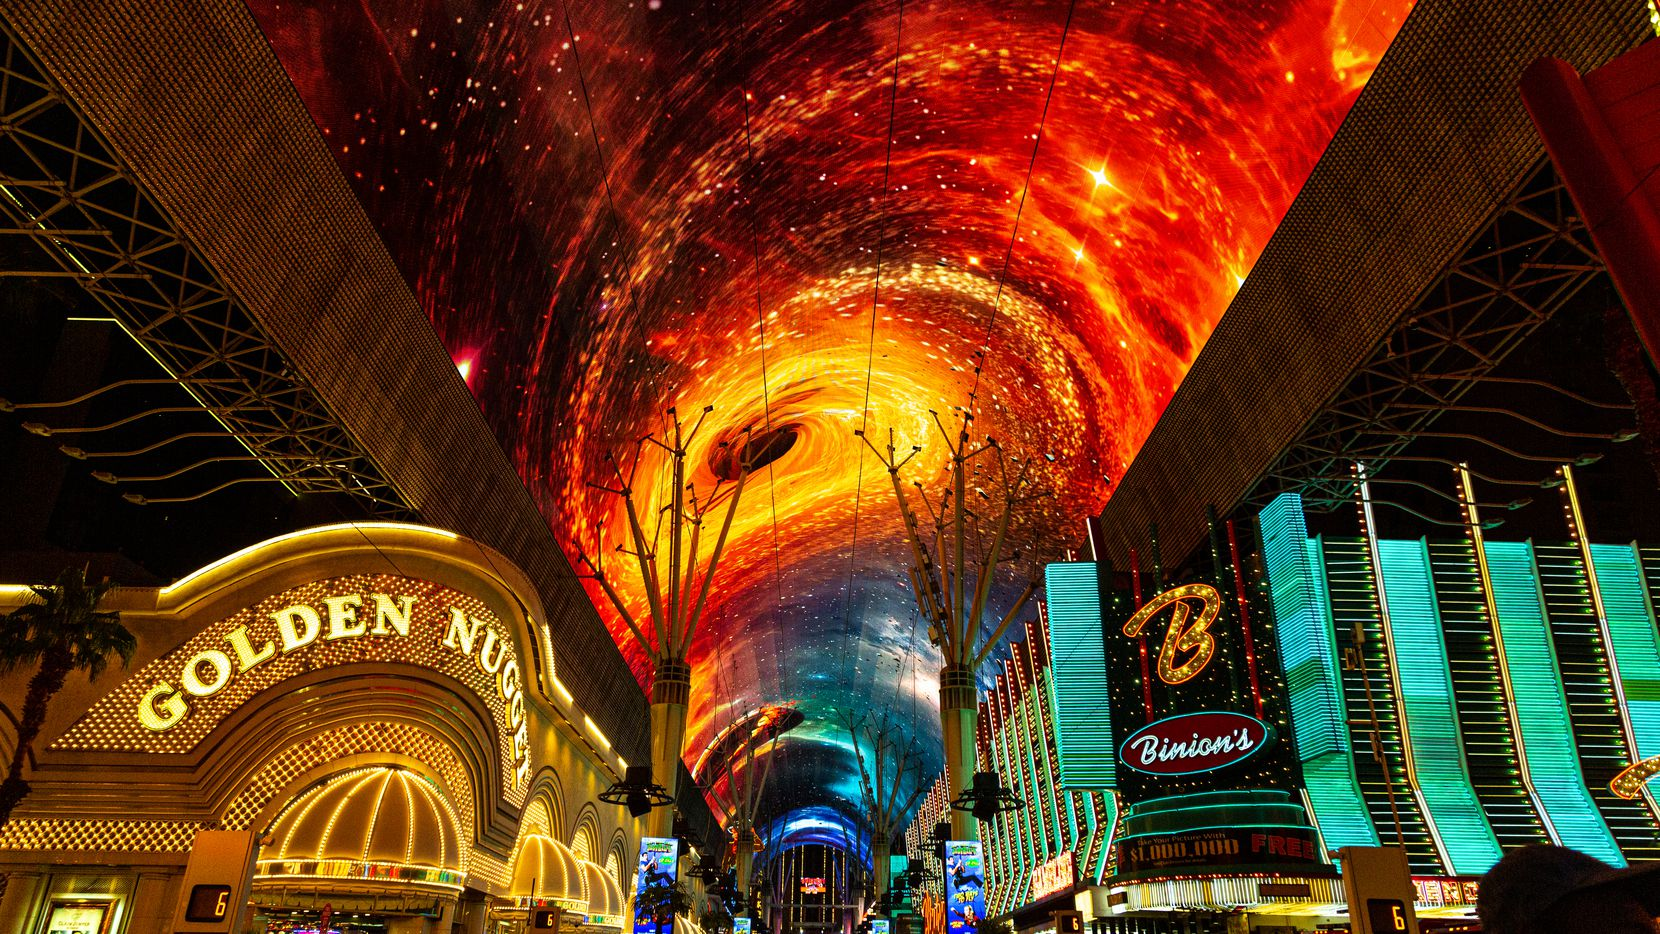 The Fremont Street Experience has upgraded its multi-sensory show and Viva Vision video canopy.